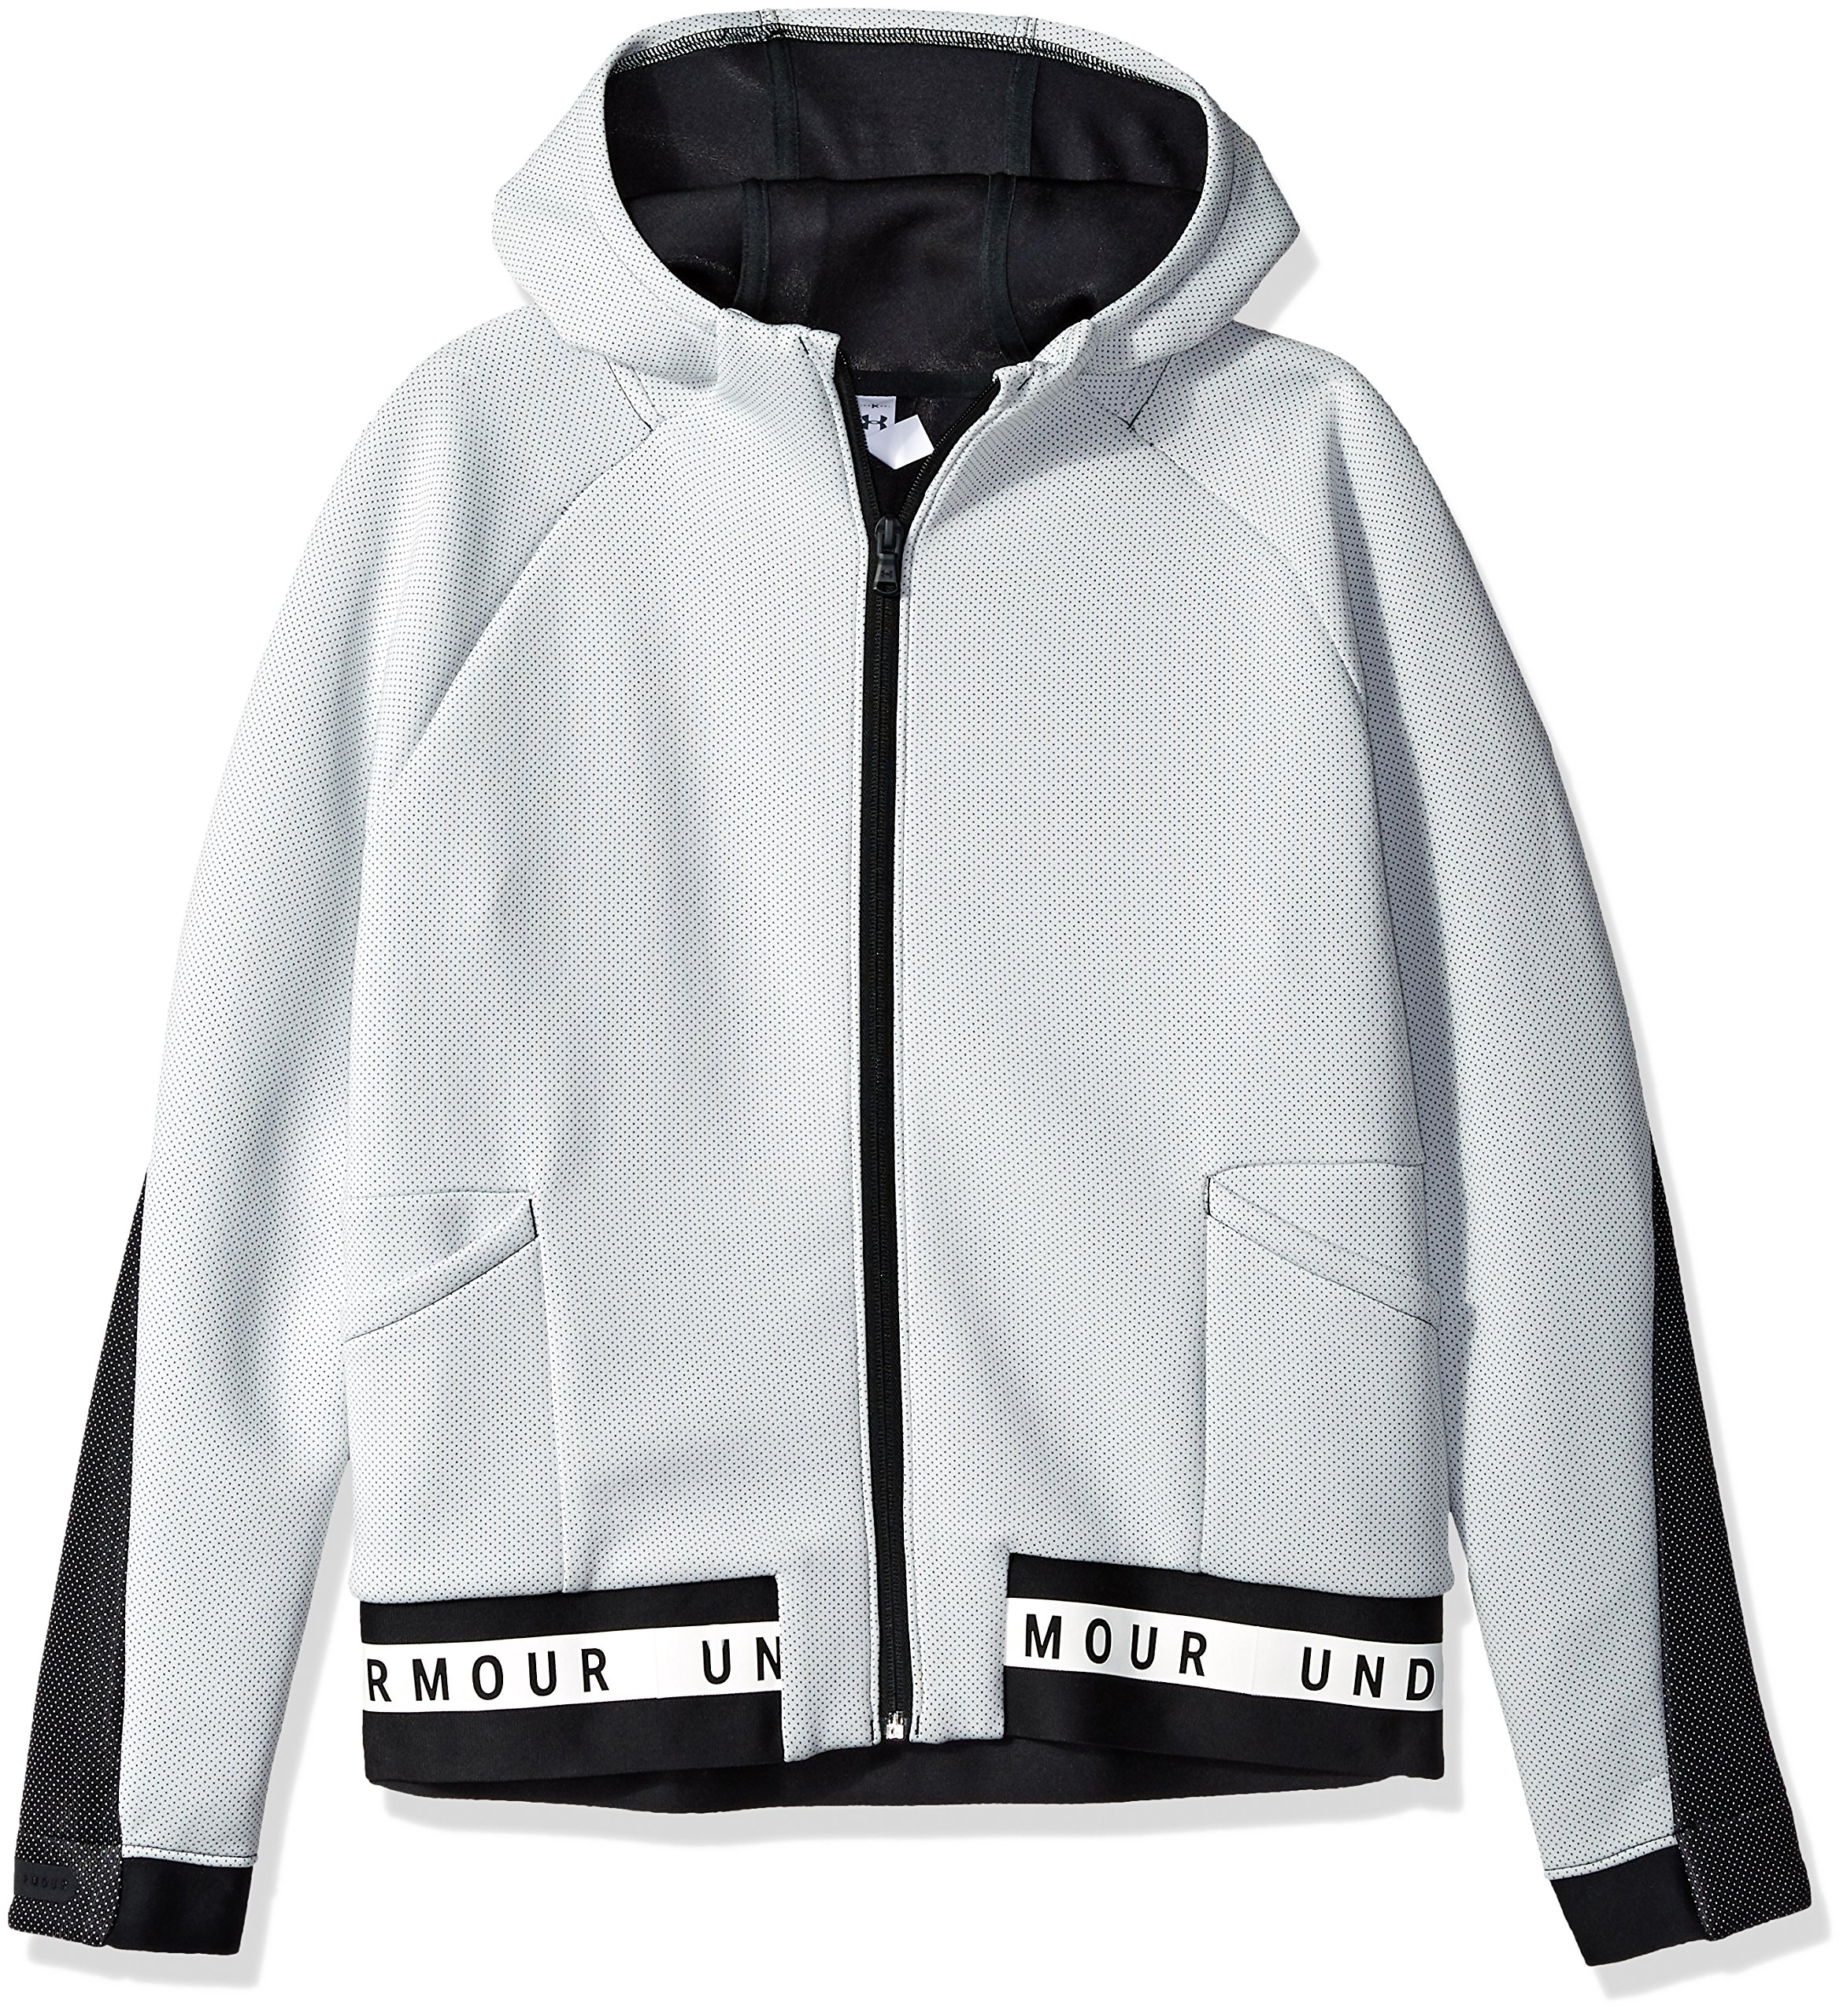 Under Armour Girls Move Full Zip, White (100)/Black, Youth X-Small by Under Armour